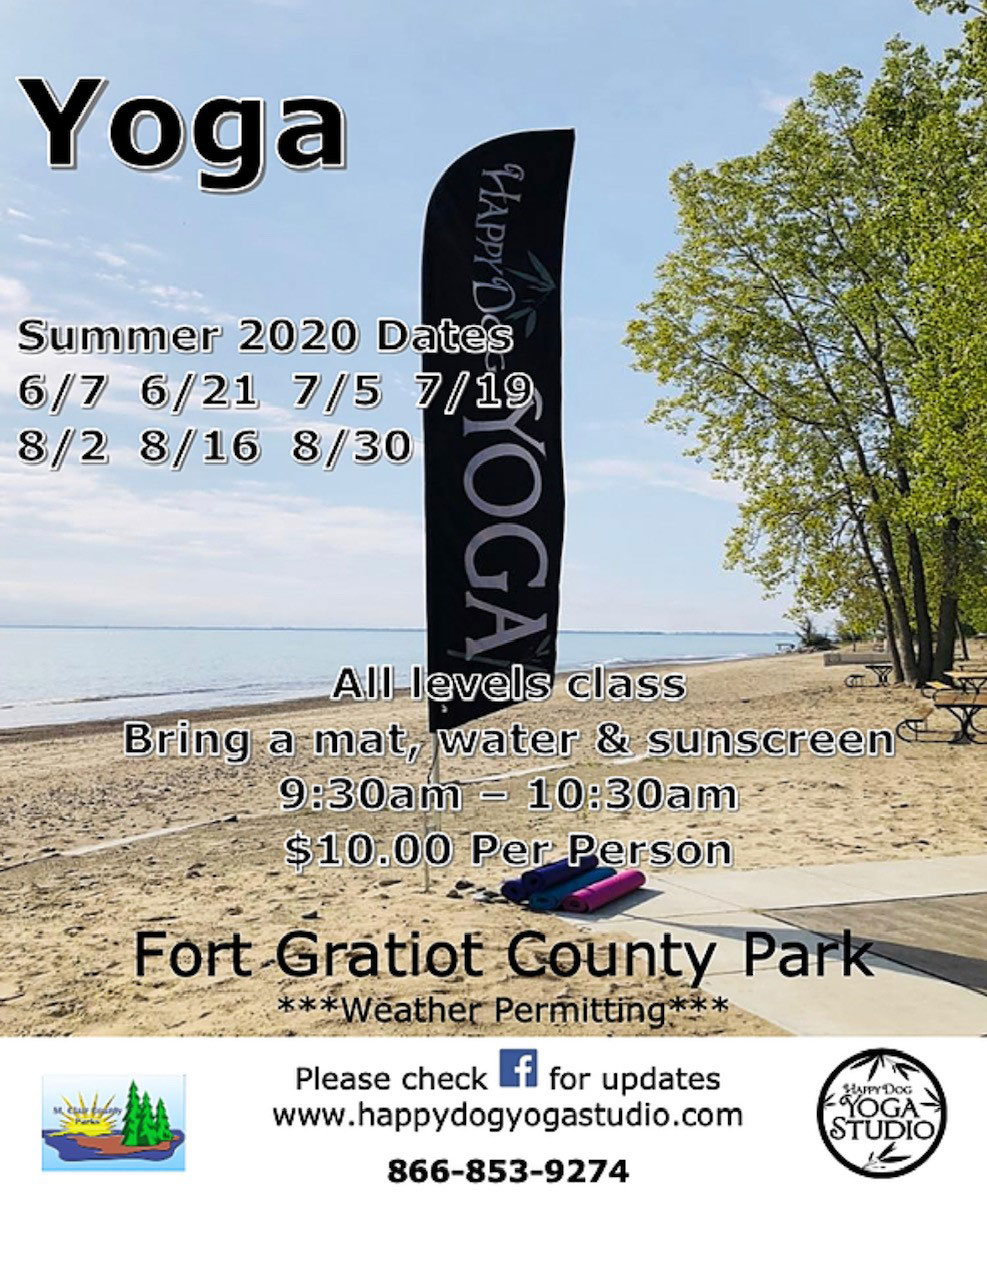 All Levels Class - Fort Gratiot County Park